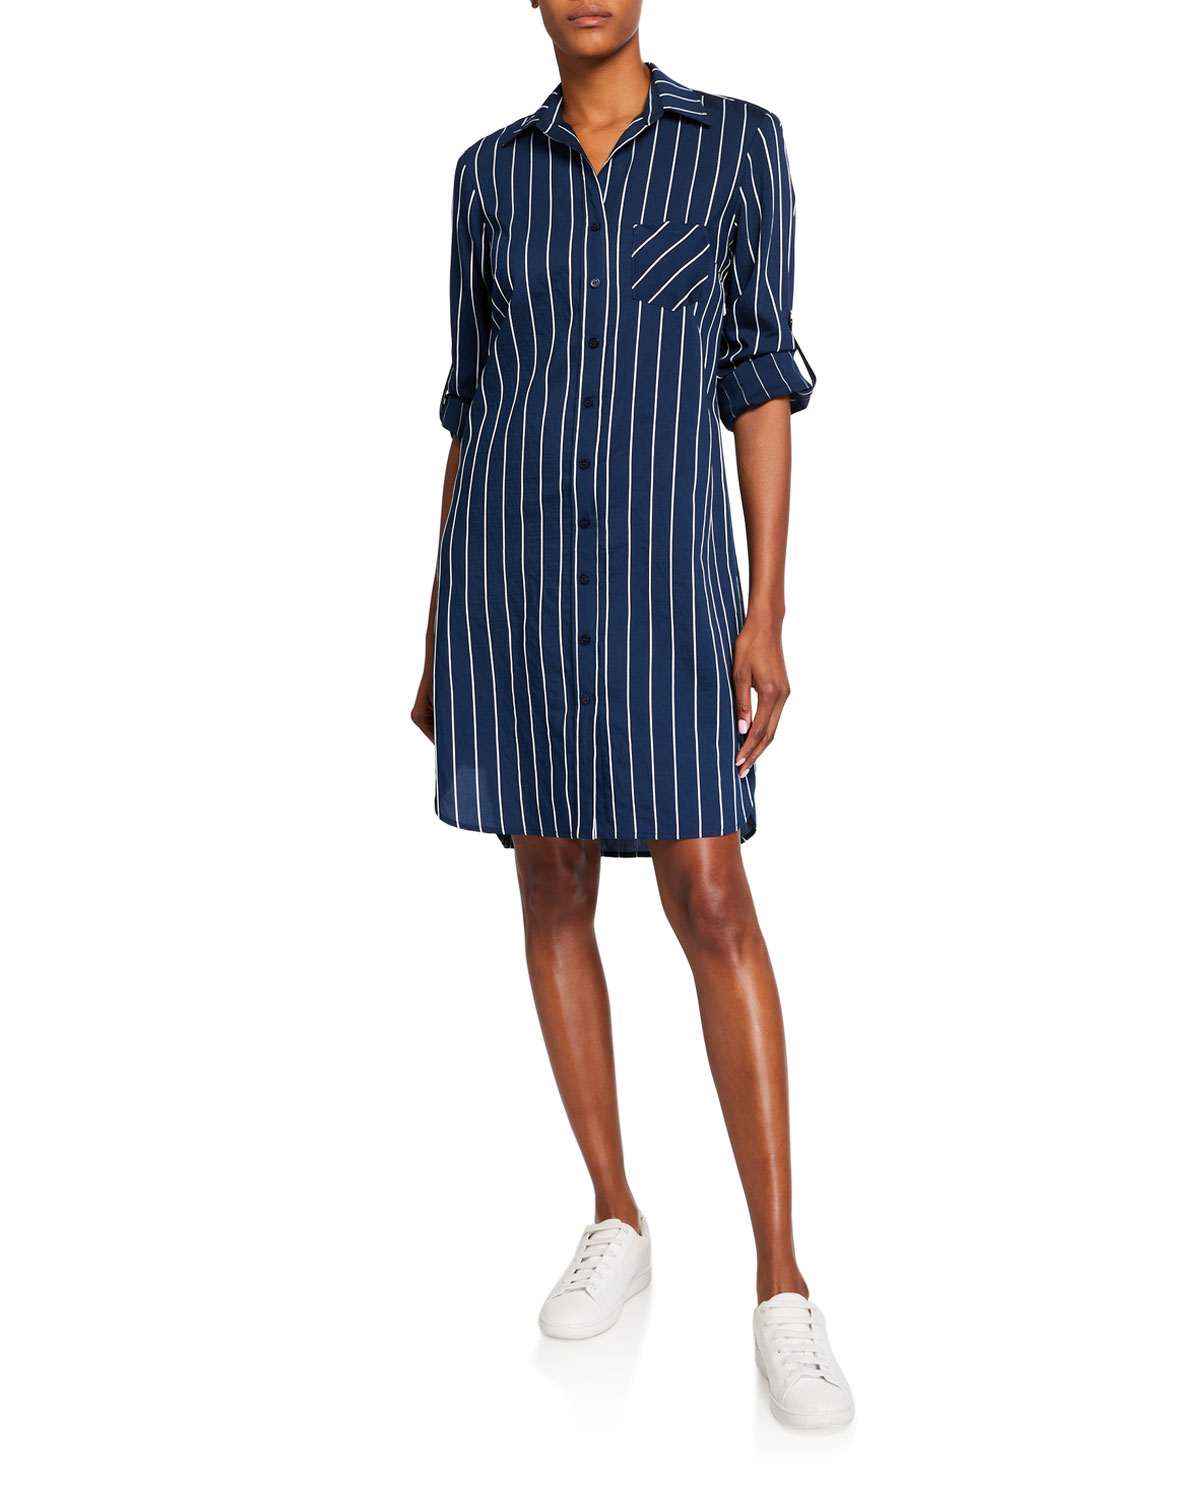 Finley Plus Size Alex Striped Shirtdress